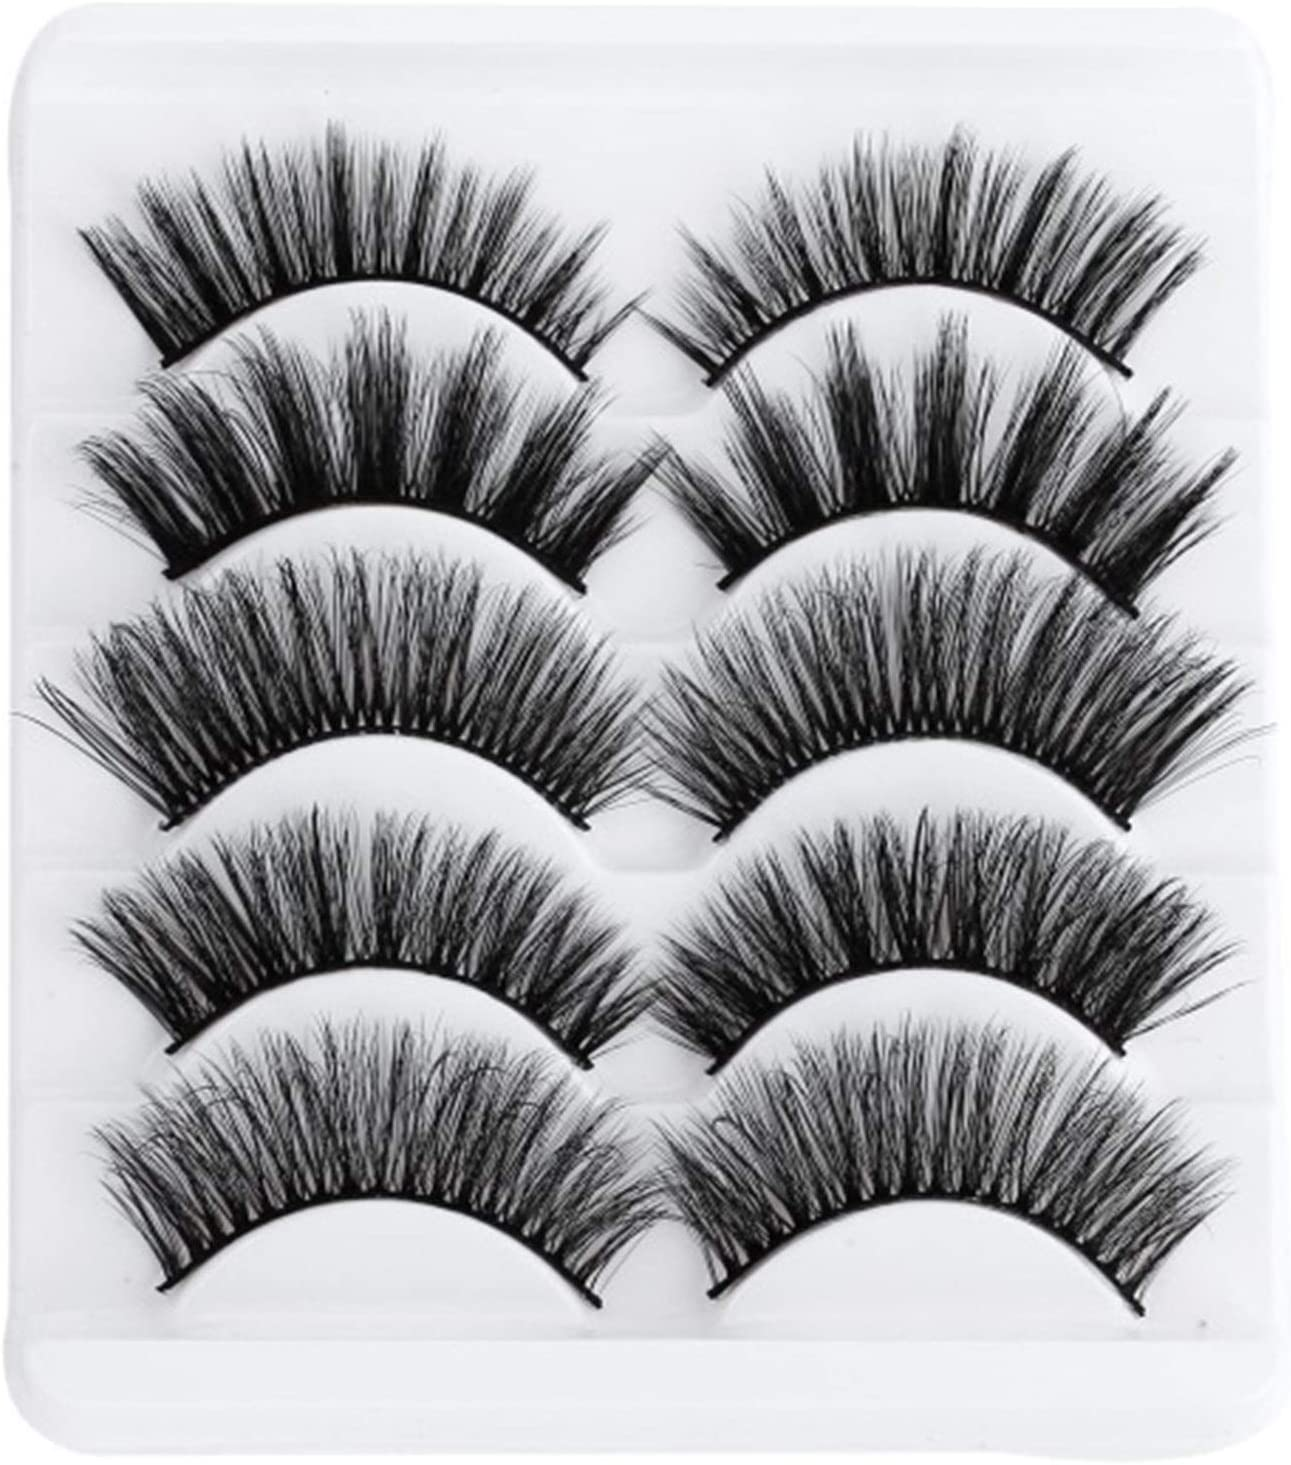 JJZY NDJPN 5-to-Million 5D Soft Don't miss the campaign Eyelashes F Hand-Made Soul Low price False